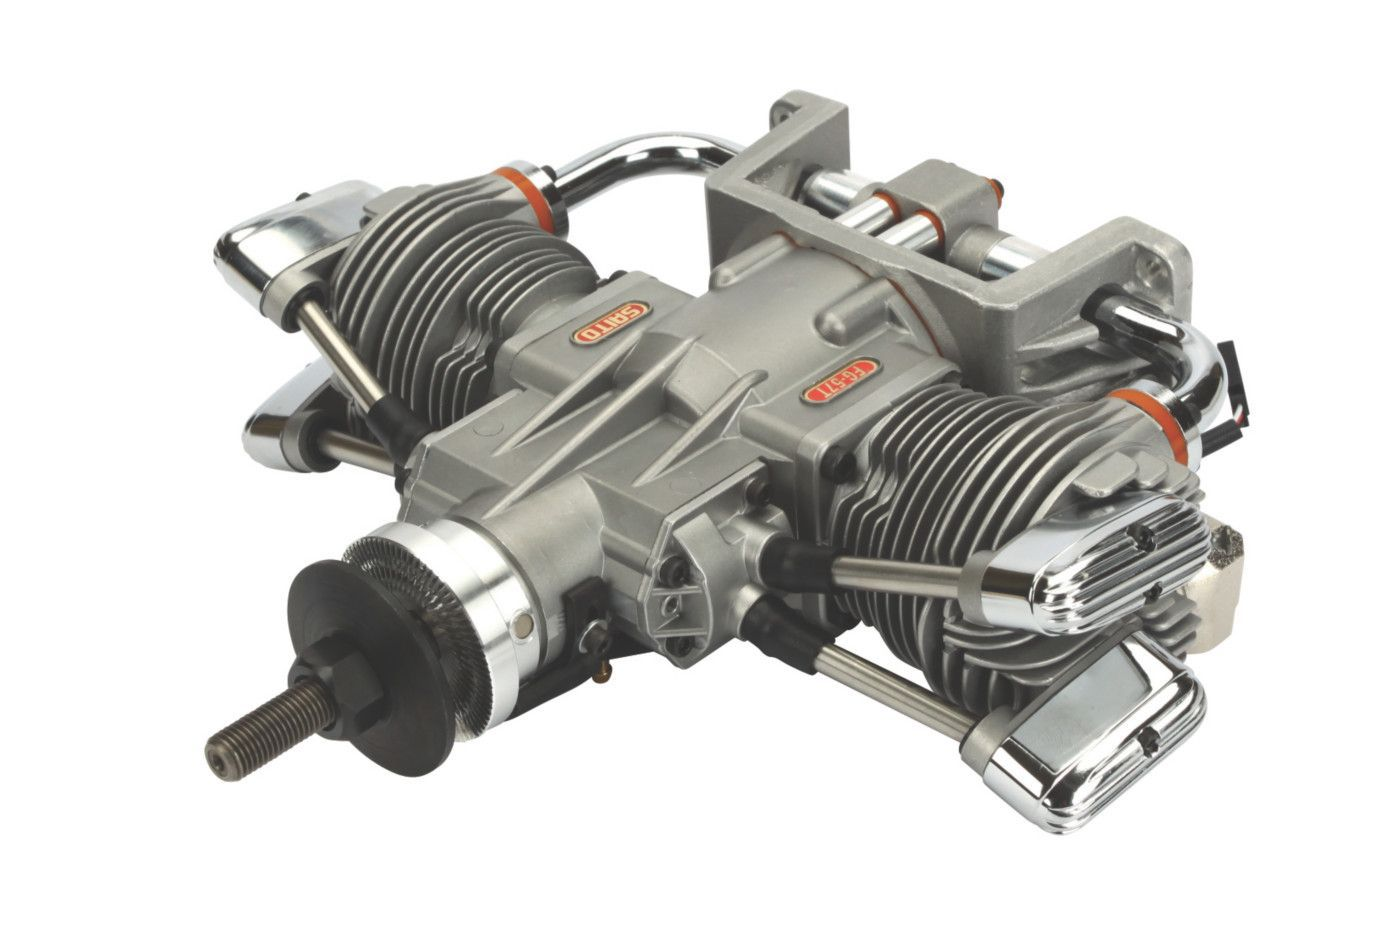 hight resolution of image for 57cc gas twin engine 4 stroke bg from horizonhobby